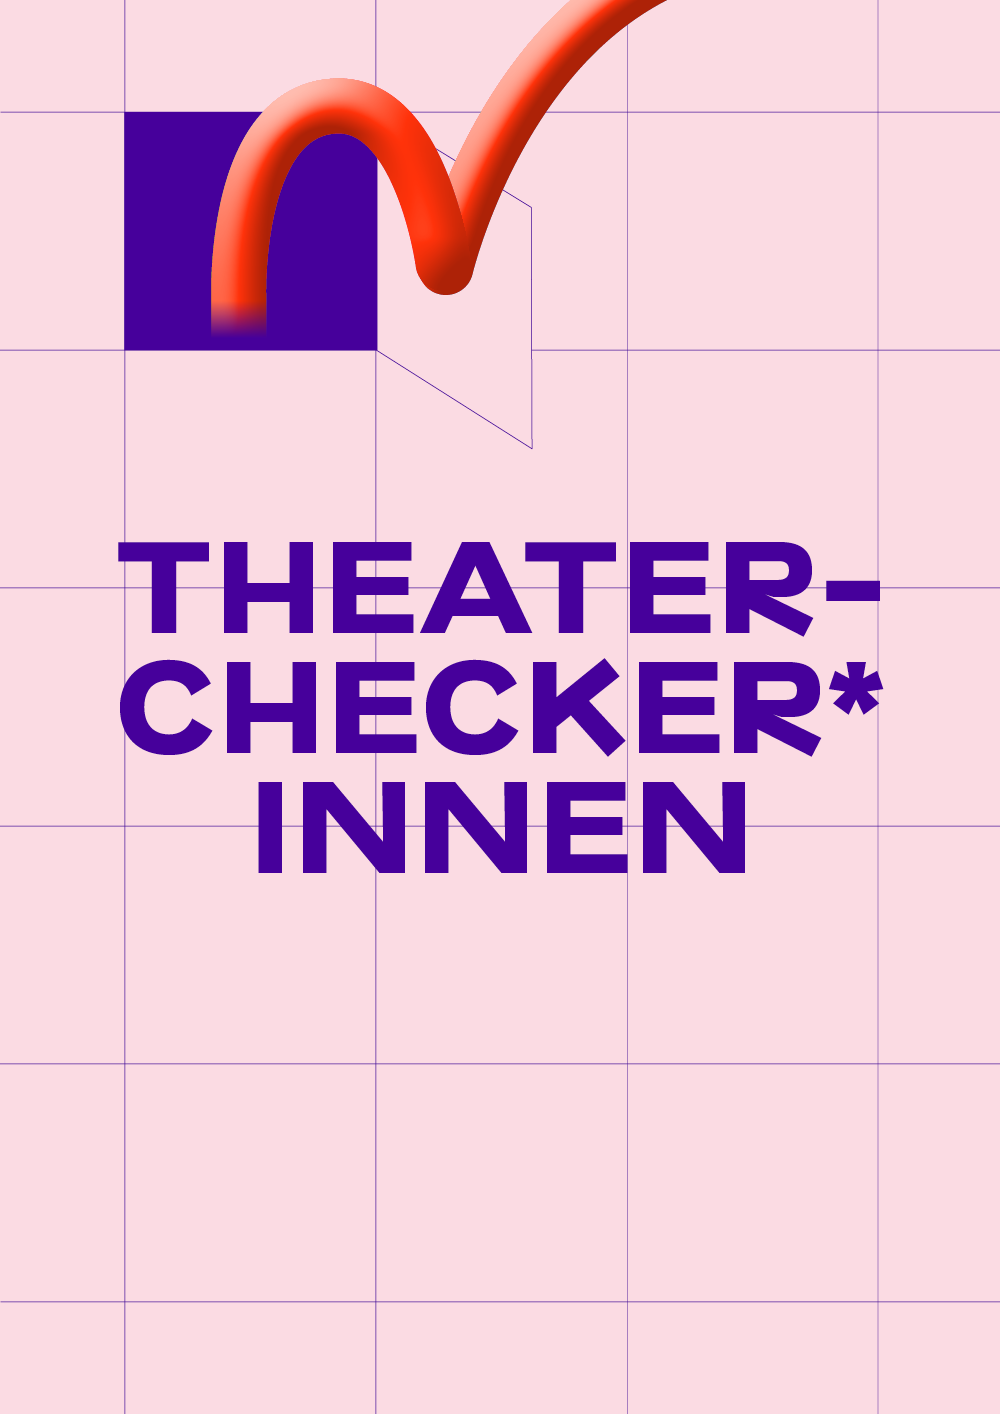 Theaterchecker*innen